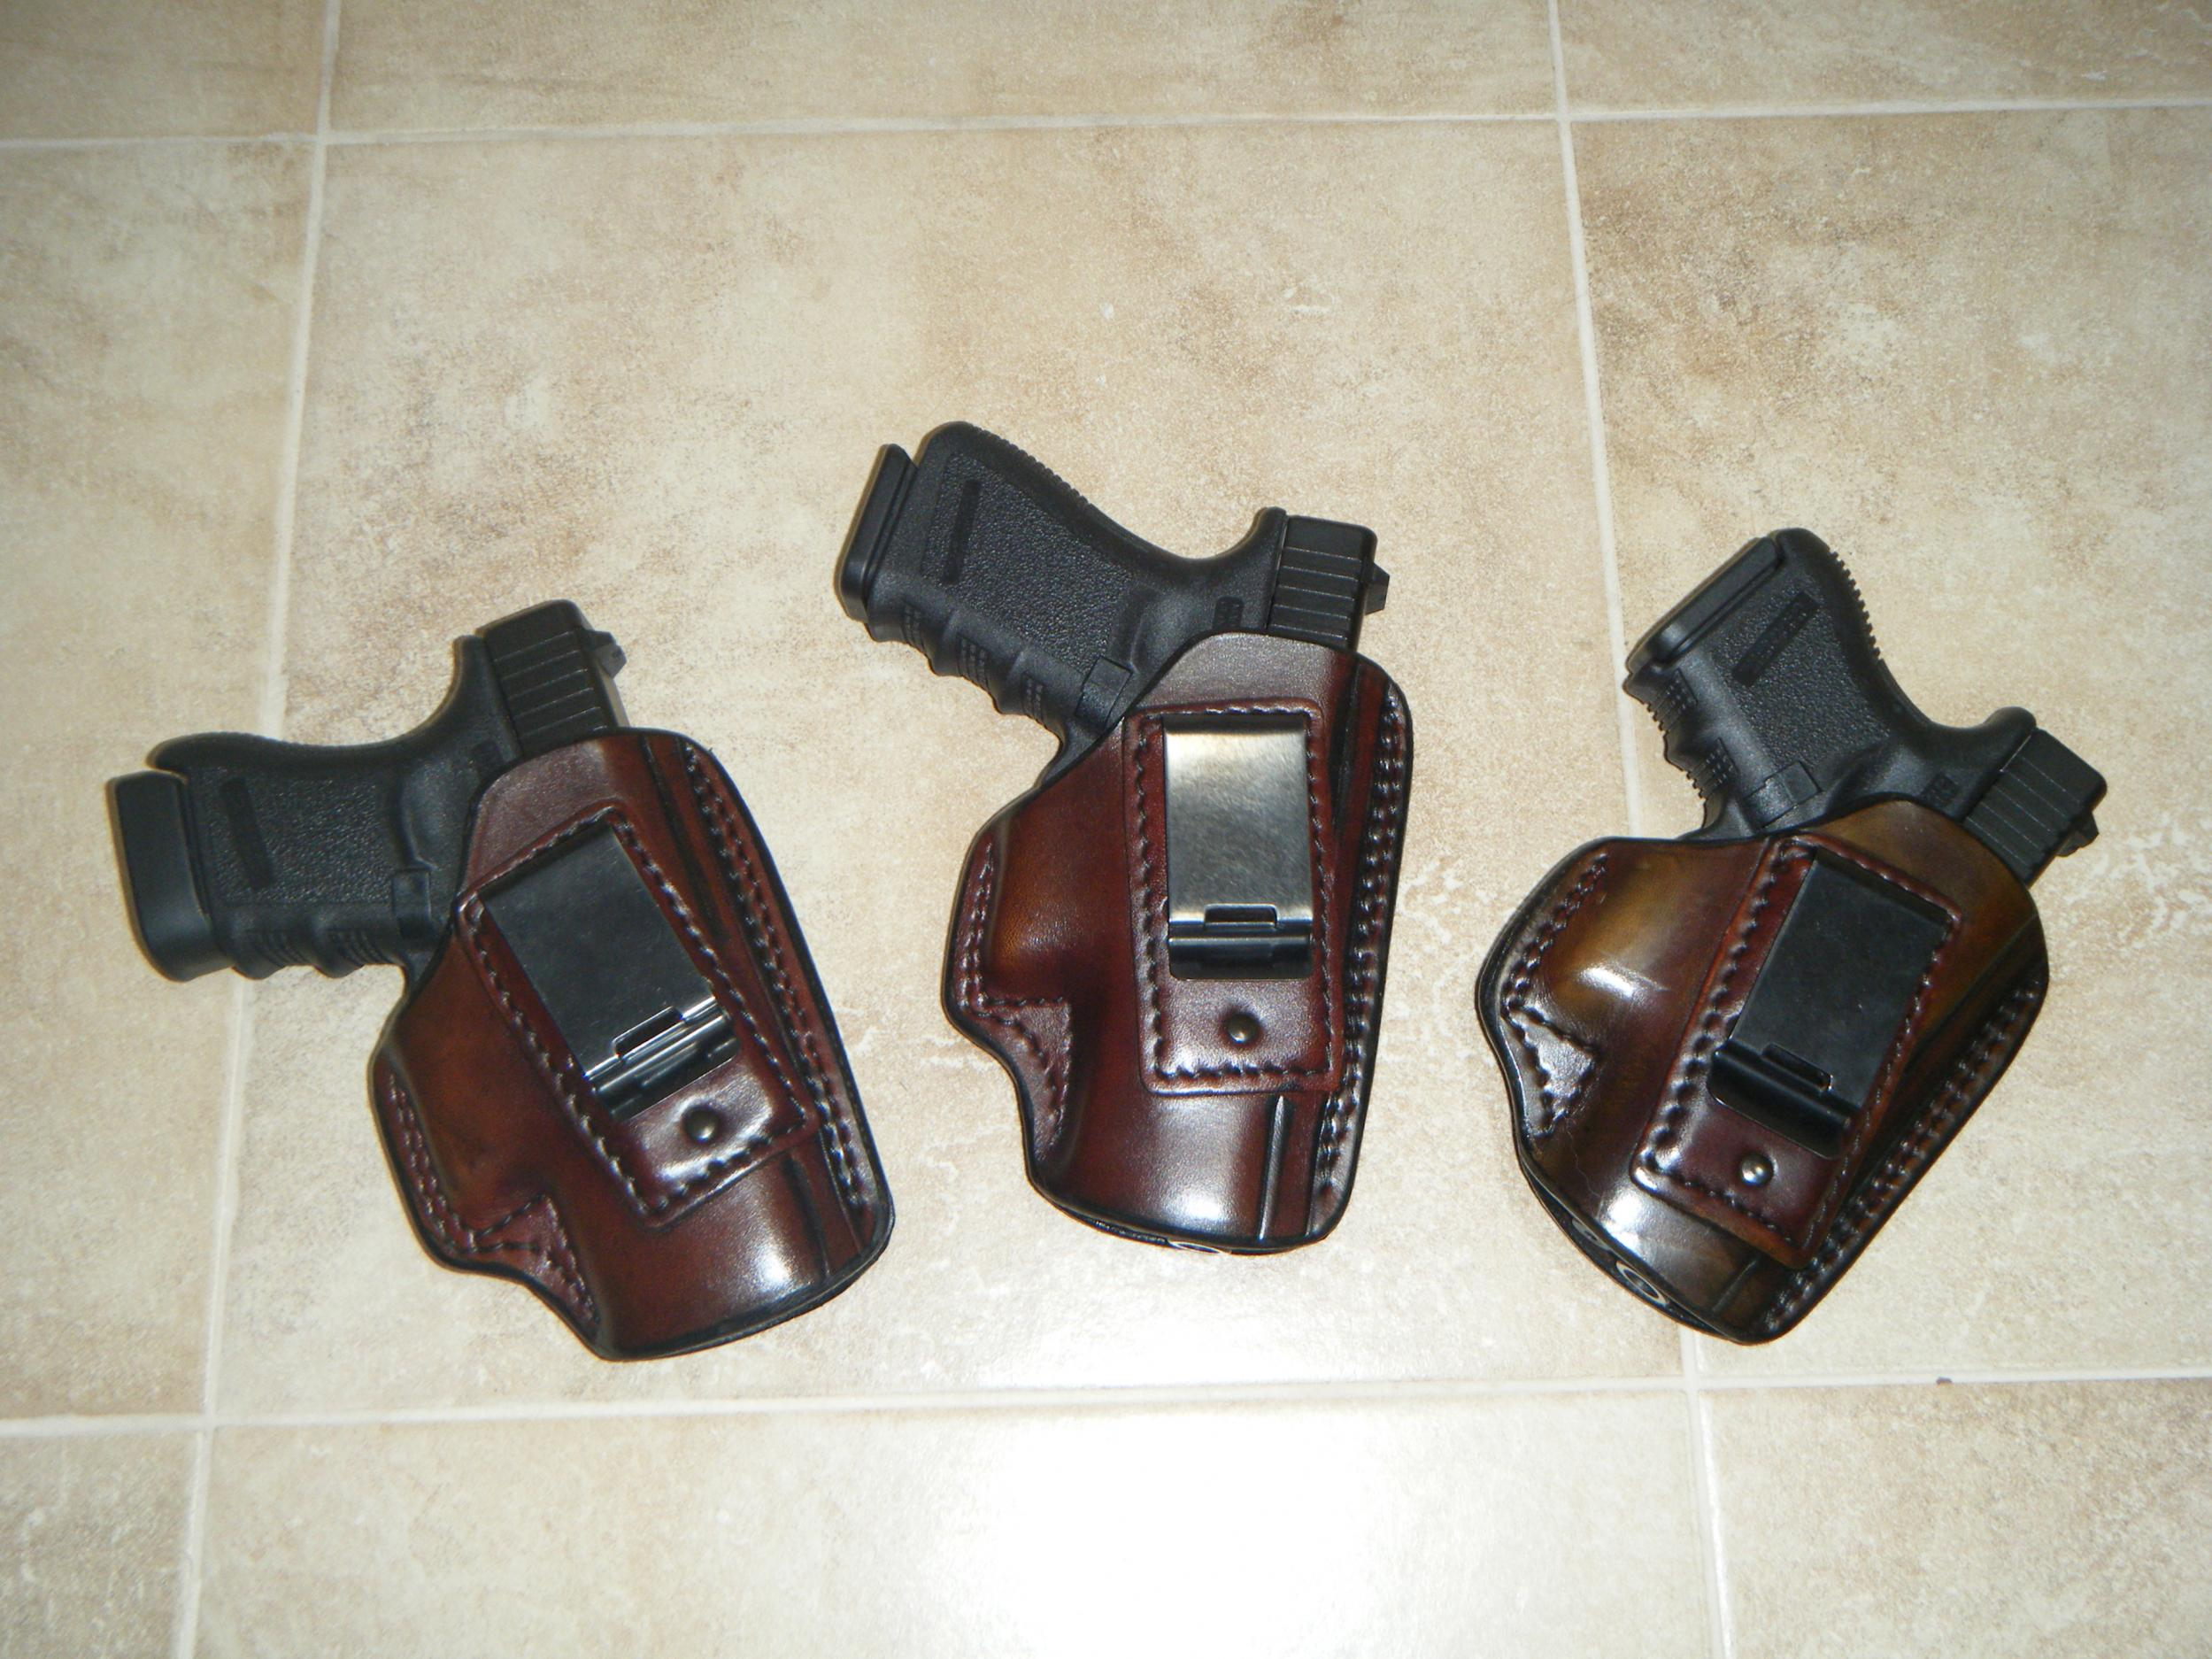 Fist leather holsters